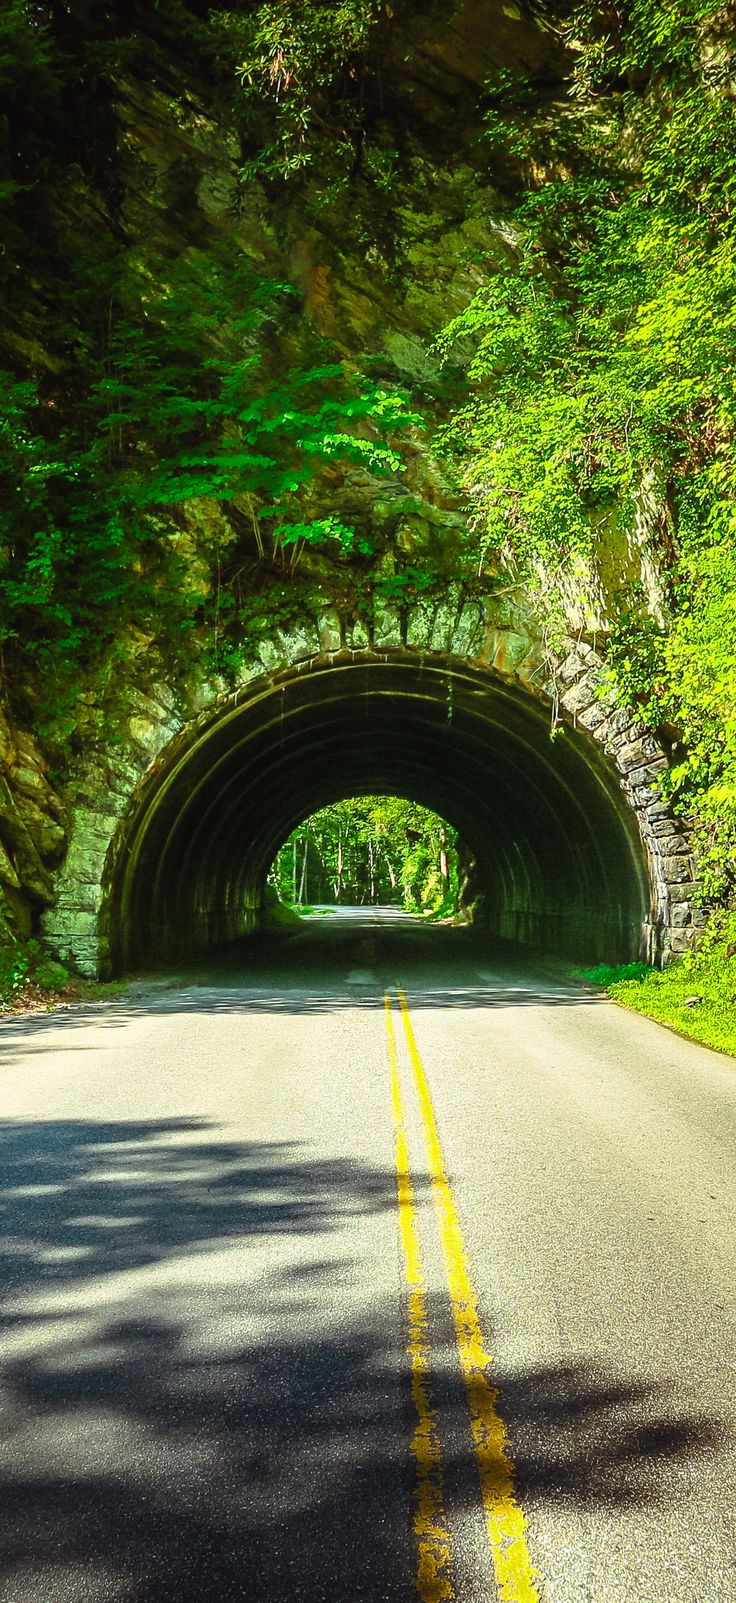 Tunnel in the Great Smoky Mountains National Park near Cades Cove.